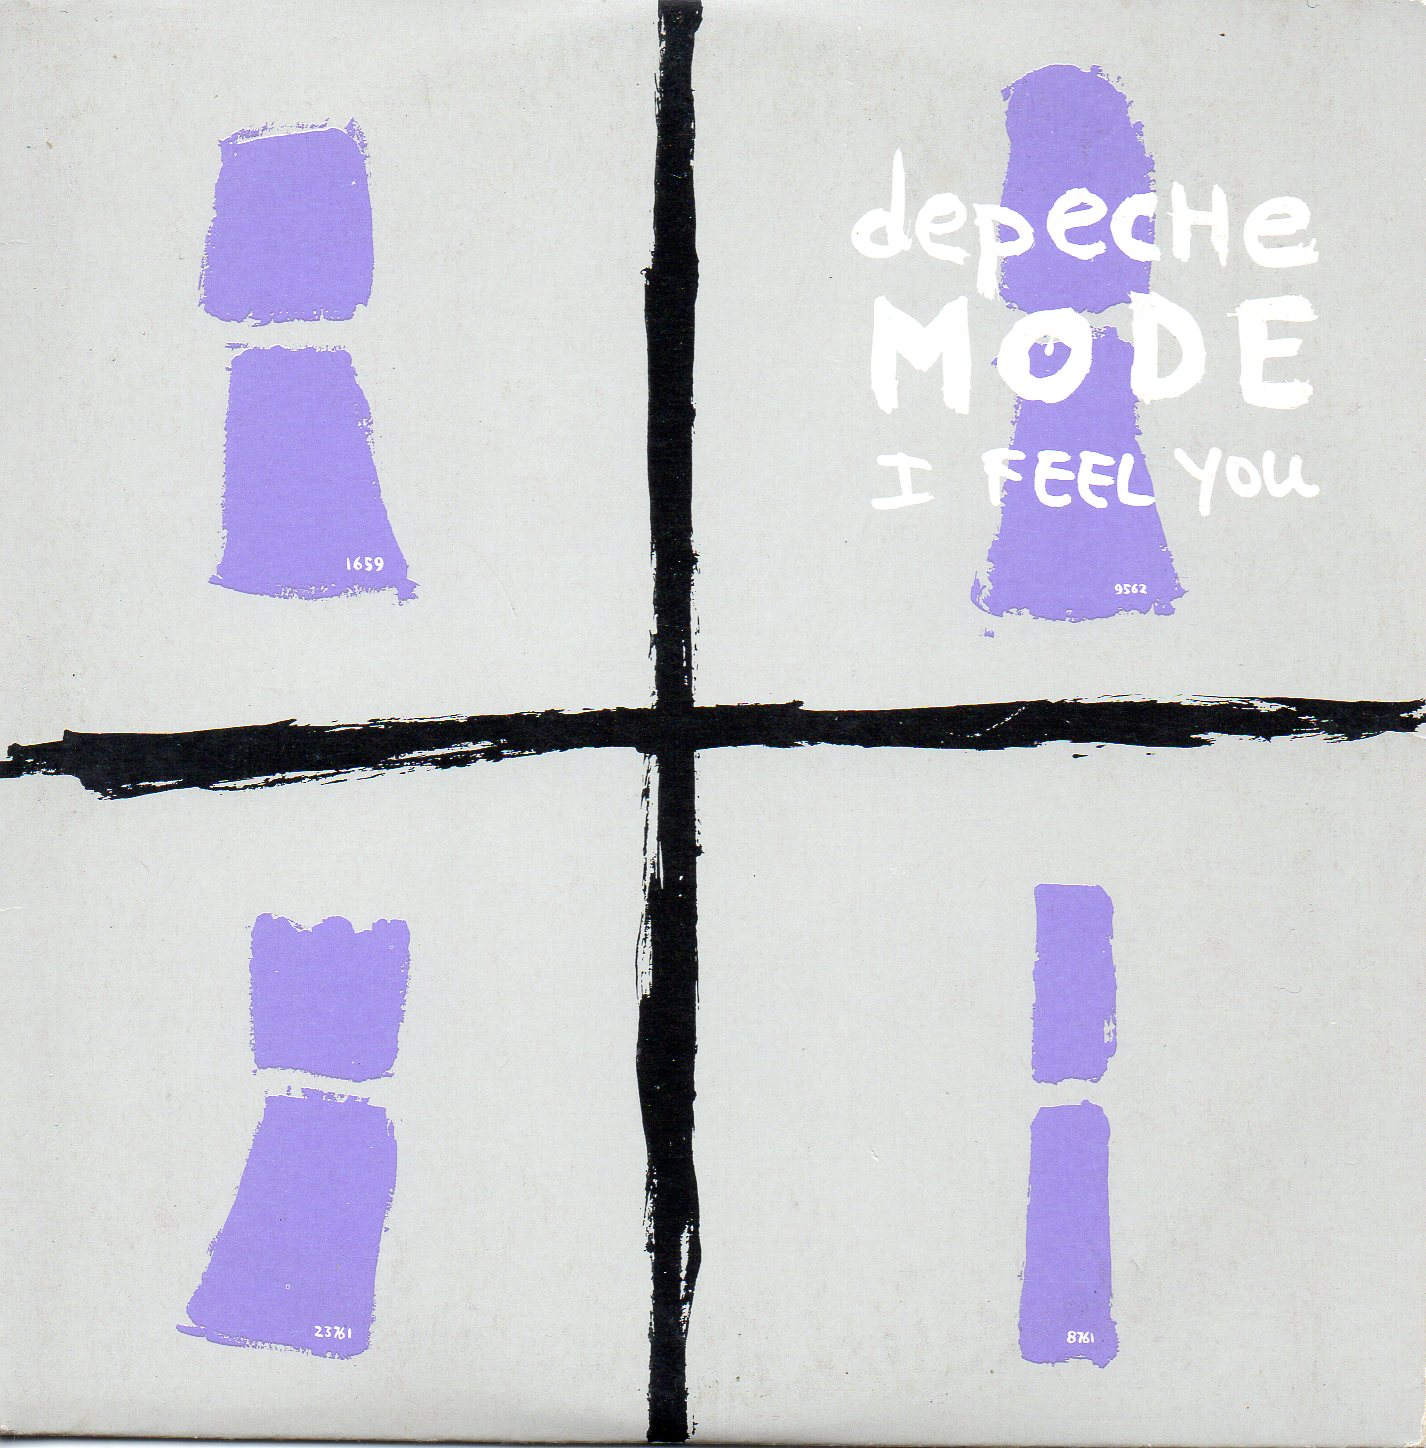 Depeche Mode - I Feel You single cover